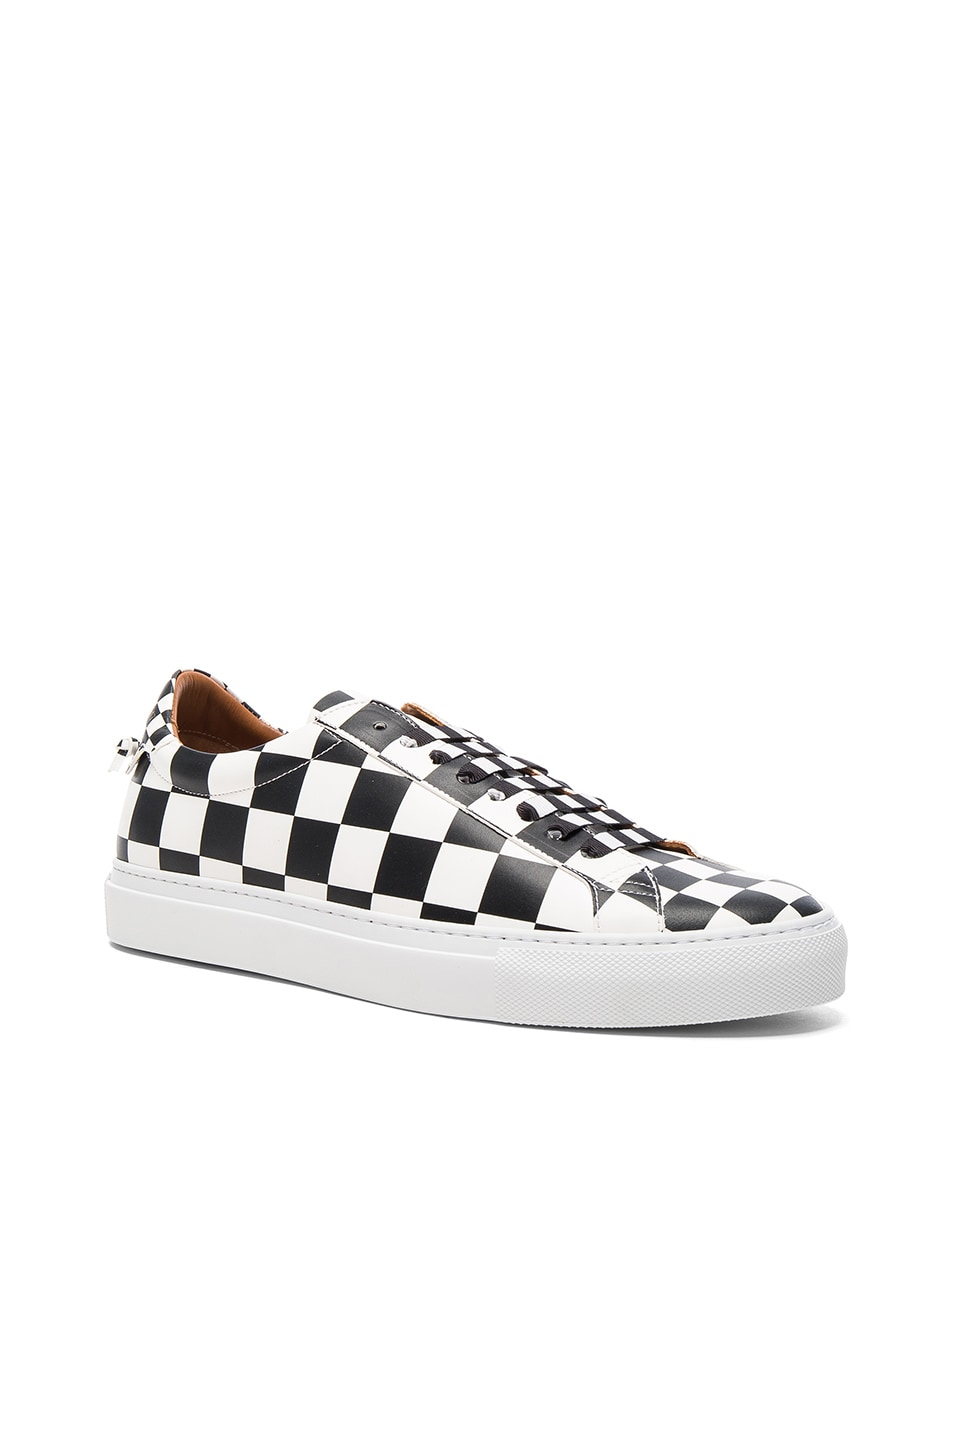 Image 1 of Givenchy Leather Urban Street Low Sneakers in Black & White